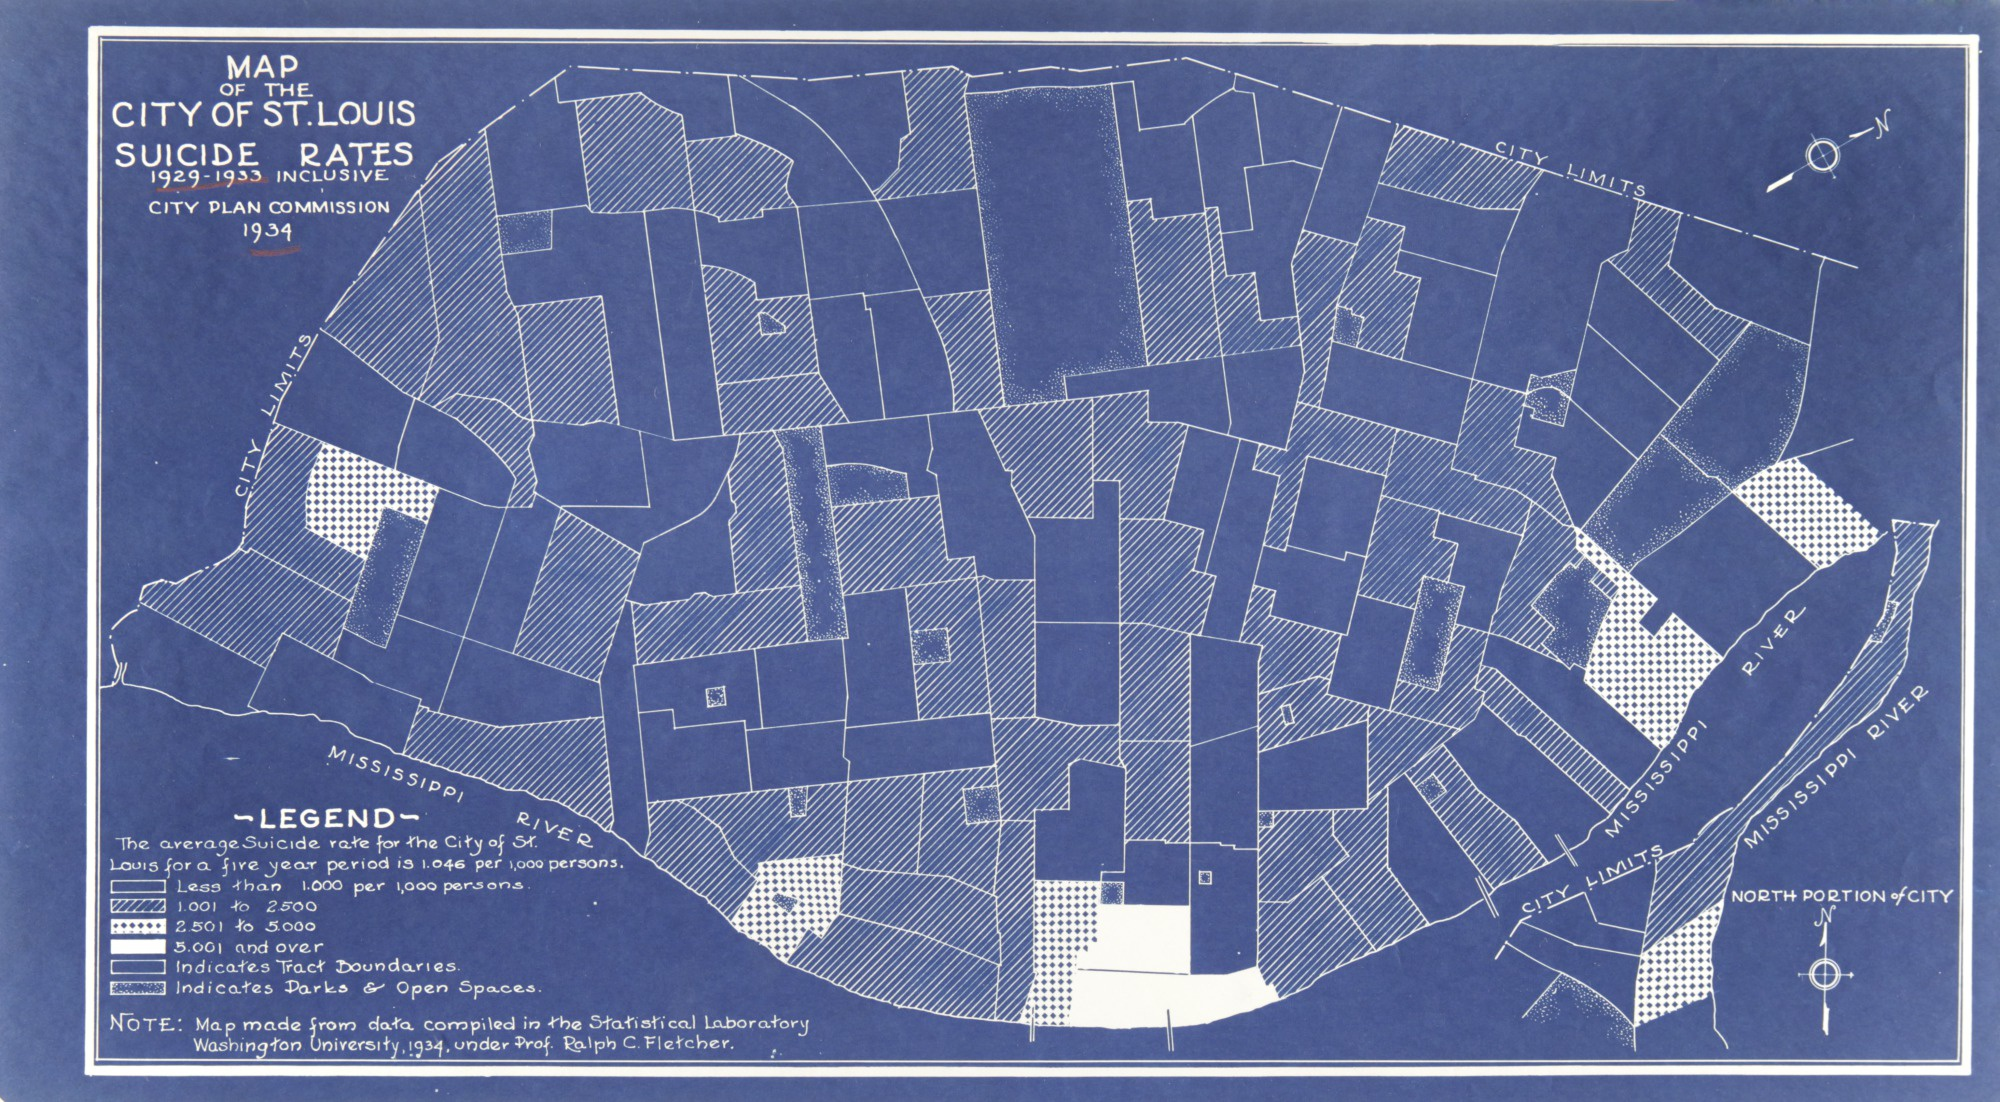 Map of the city of St. Louis: rates, 1929-1933 ... City Map Of Washington Mo on city of desoto missouri, city map of ozark mo, city map of creve coeur mo, city map of independence mo, fountain city road desoto mo, city road map of teanaway wa, map of imperial mo, city of hannibal mo map, city map of sedalia mo, city of washington pa, city map of columbia mo, city map of jefferson city mo, city of palmyra mo, city of warrenton mo map, city of caruthersville mo, city map of springfield mo, street map of columbia mo, map of university city mo, missouri city mo,